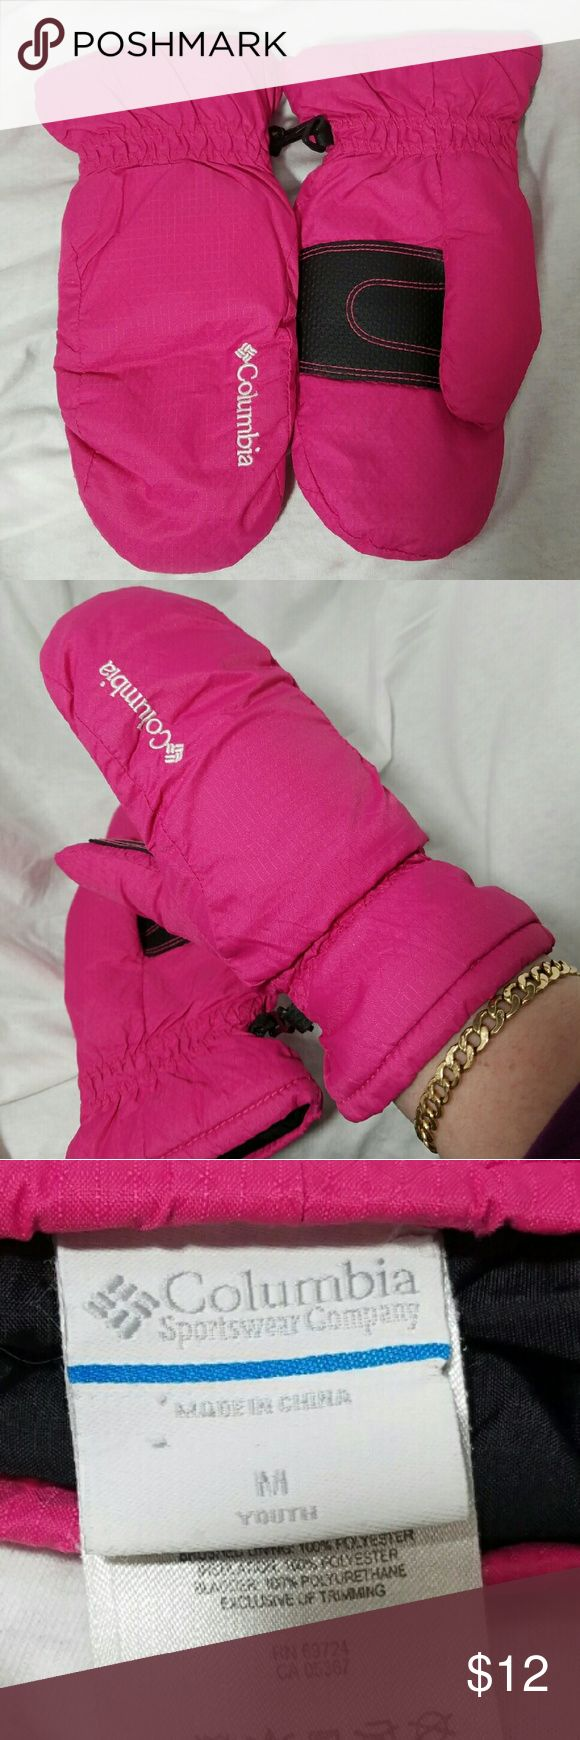 """COLUMBIA Youth Sz MED Hot Pink Mittens Brand: Columbia  Item: *Deep Color yet not Dark Hot Pink Mittens *They Are Youth Size Medium - I am an adult with Small Hands and they Fit Me Perfectly. *I Certainly Can't Promise They Would Fit All Adult Women but I Think Girls in Their Young Teens Wouls Have No Problem. *They Measure Across the Palm 4.25"""" and 9"""" for Total Length *There Was a Seam on the Right Glove Near Where the Thumb Stitching Was Coming Undone - I Sewed it All back, Same Color. EUC…"""